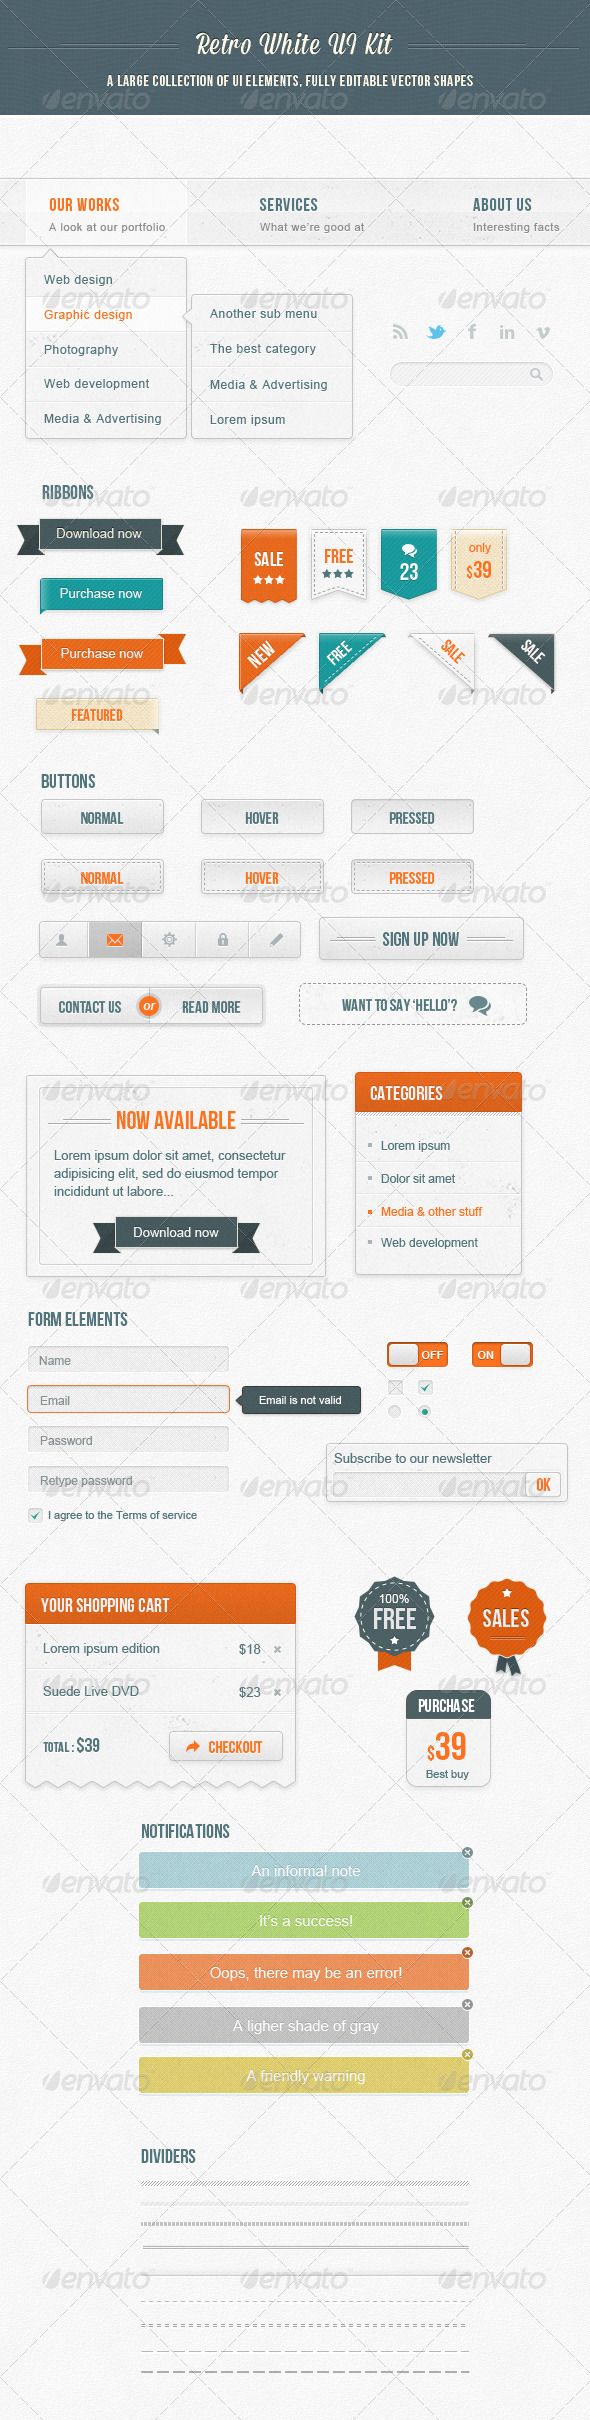 GraphicRiver Retro White Ui Kit 4092915